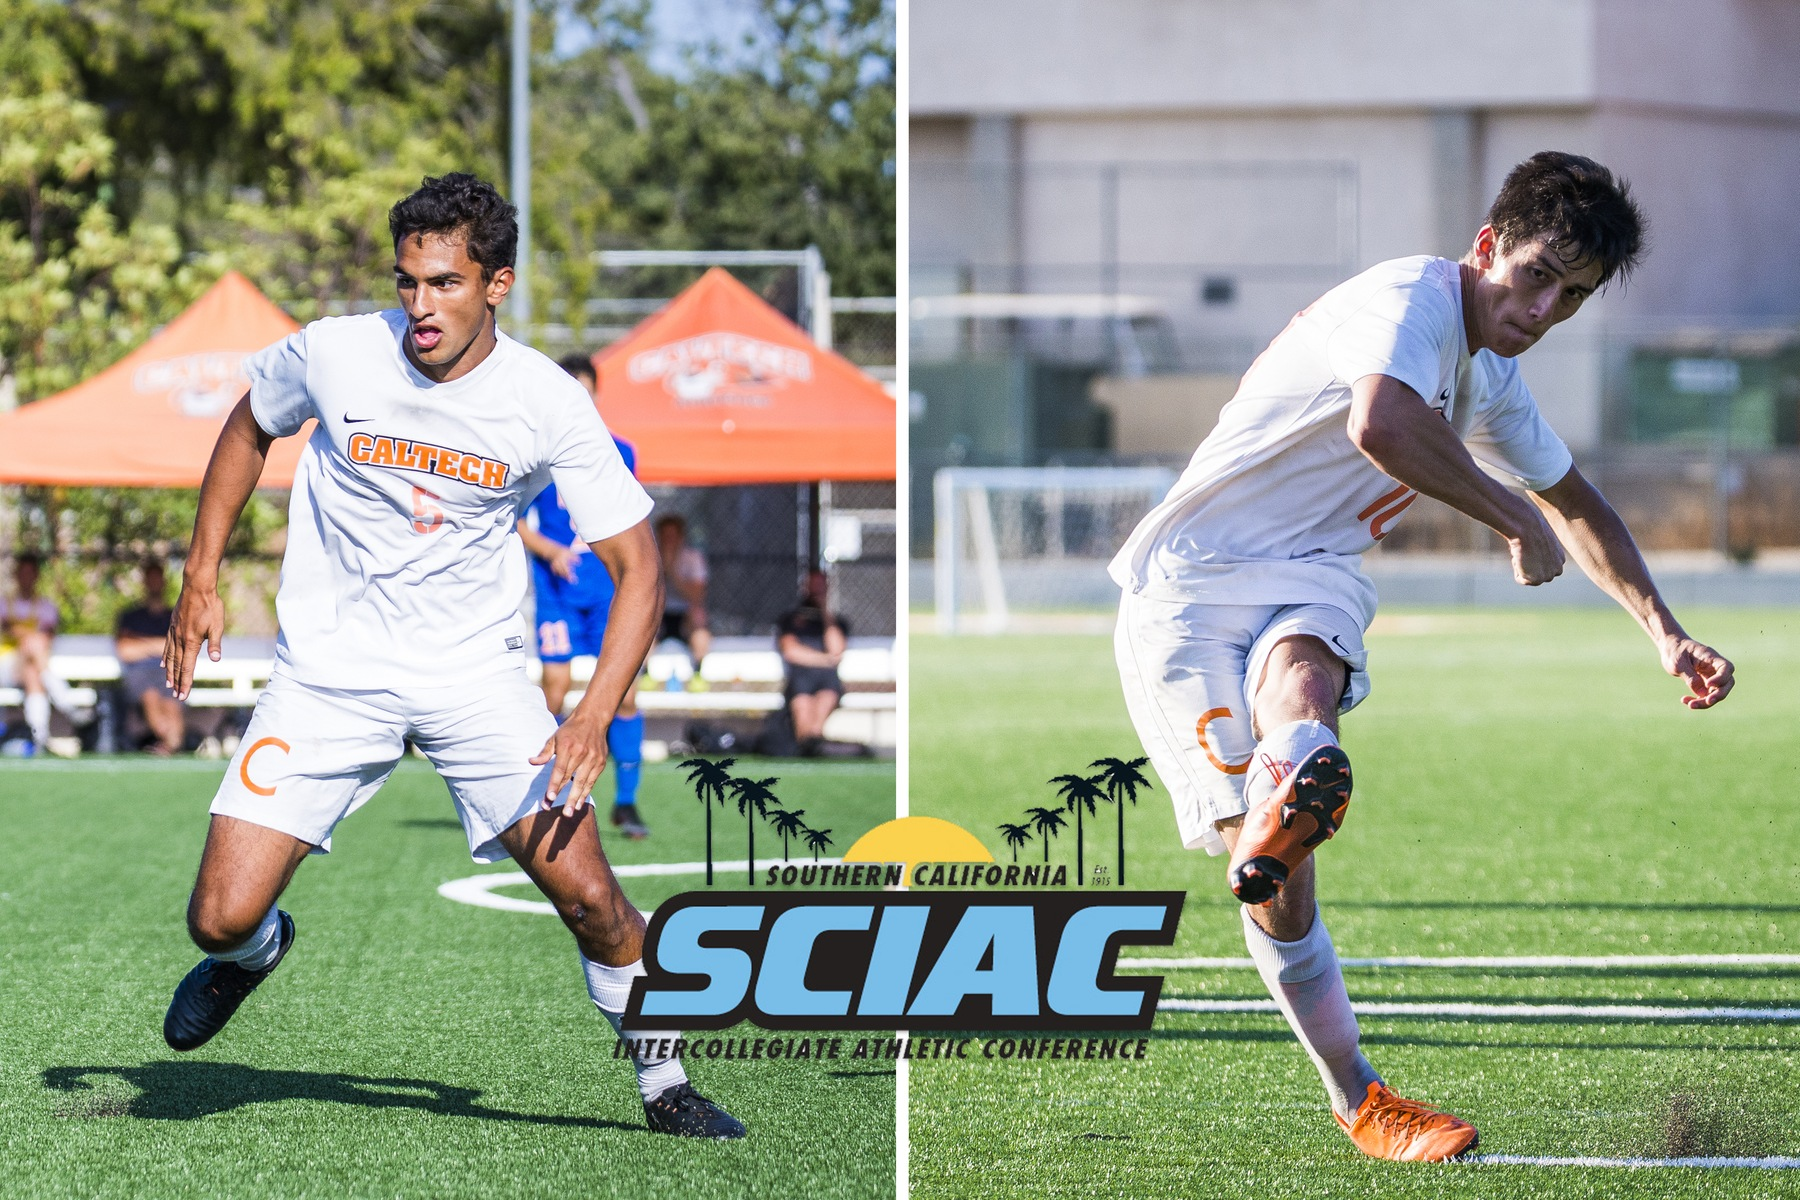 Johnson Named SCIAC Newcomer, Yu Two-Time Second Team